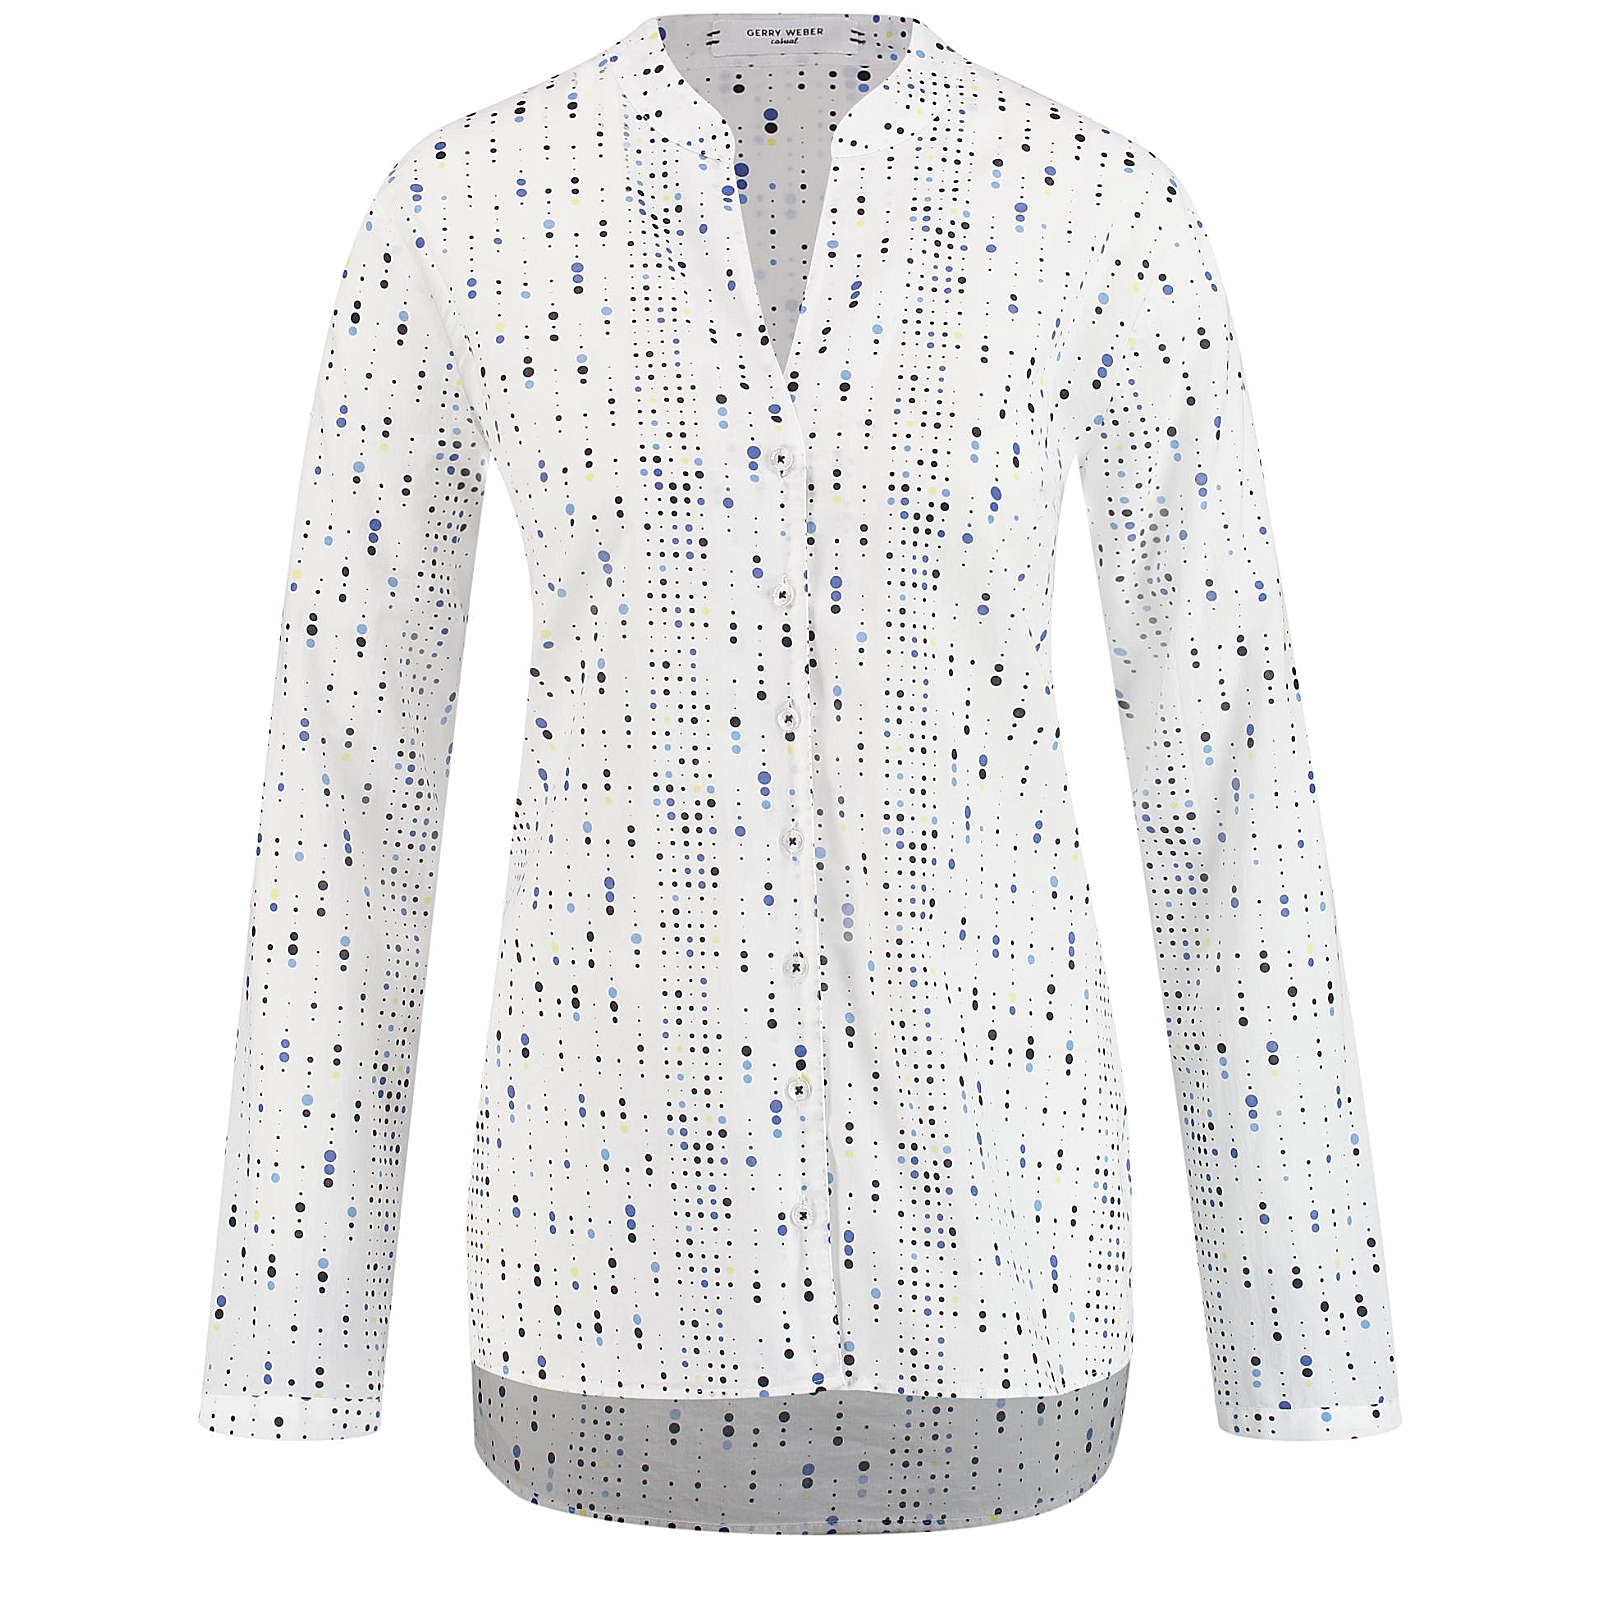 938f350668c6fb Gerry Weber Bluse 1/1 Arm Bluse mit Allovermuster 29.99 € 69.99 €